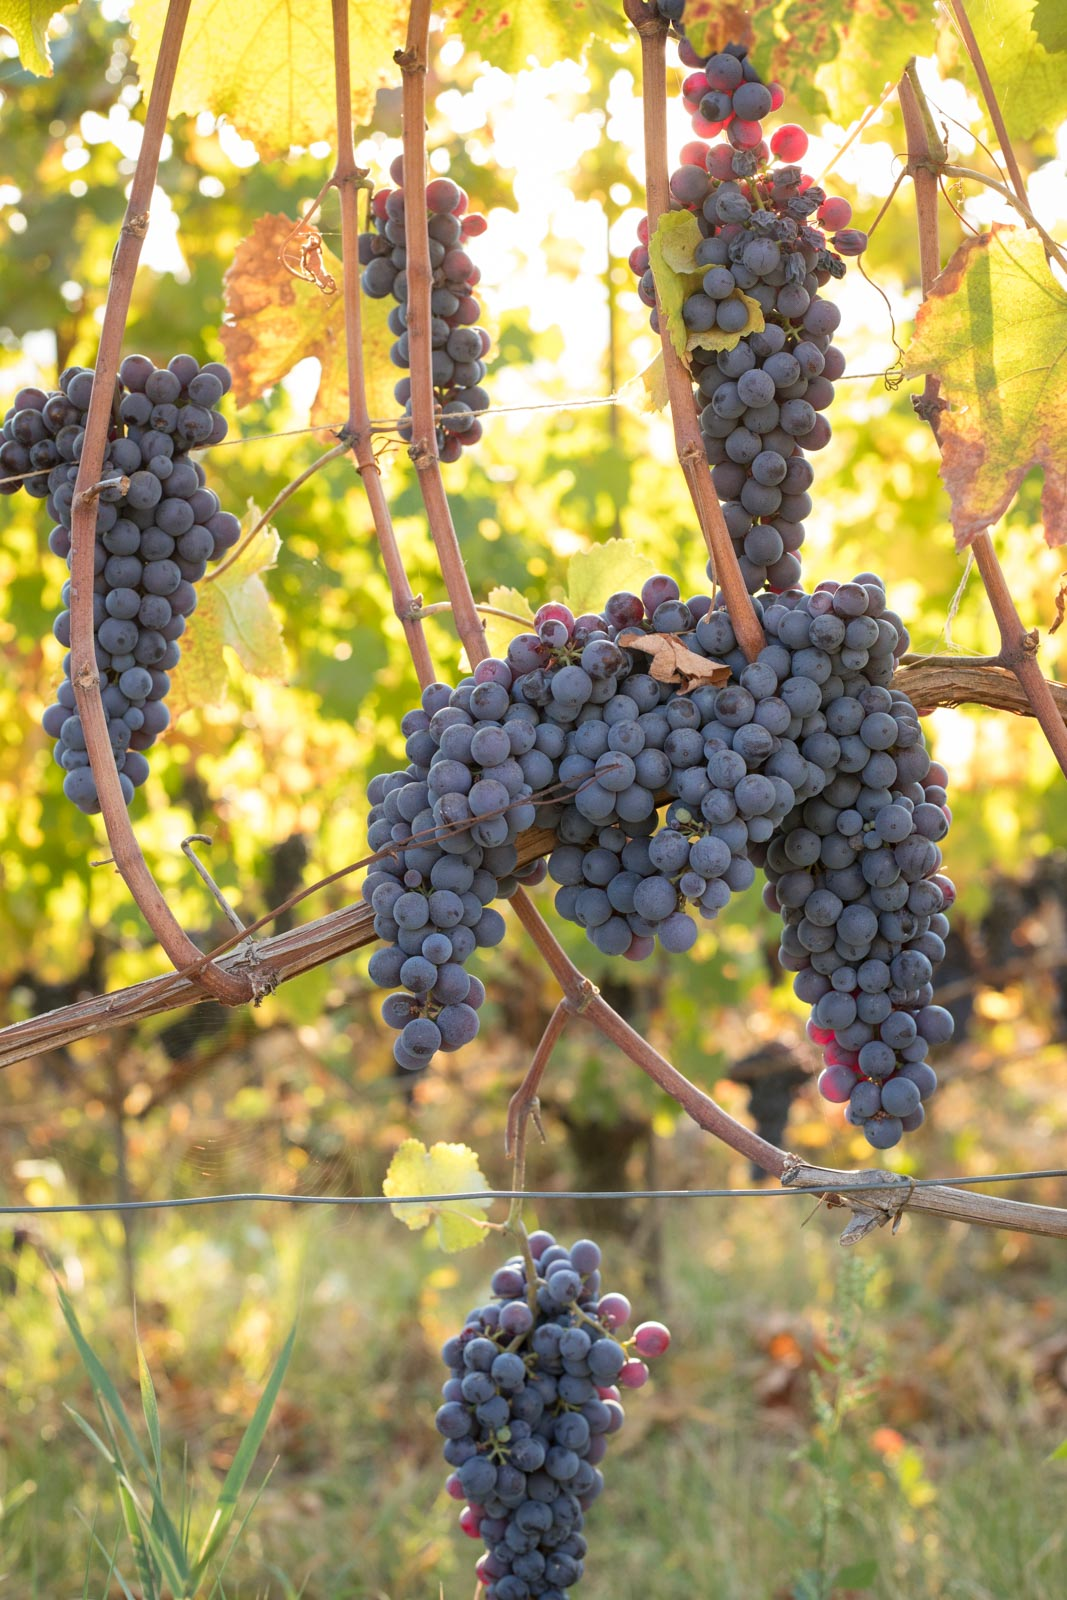 Nebbiolo grapes enjoy the last days before harvest near Barolo, Italy. ©Kevin Day/Opening a Bottle